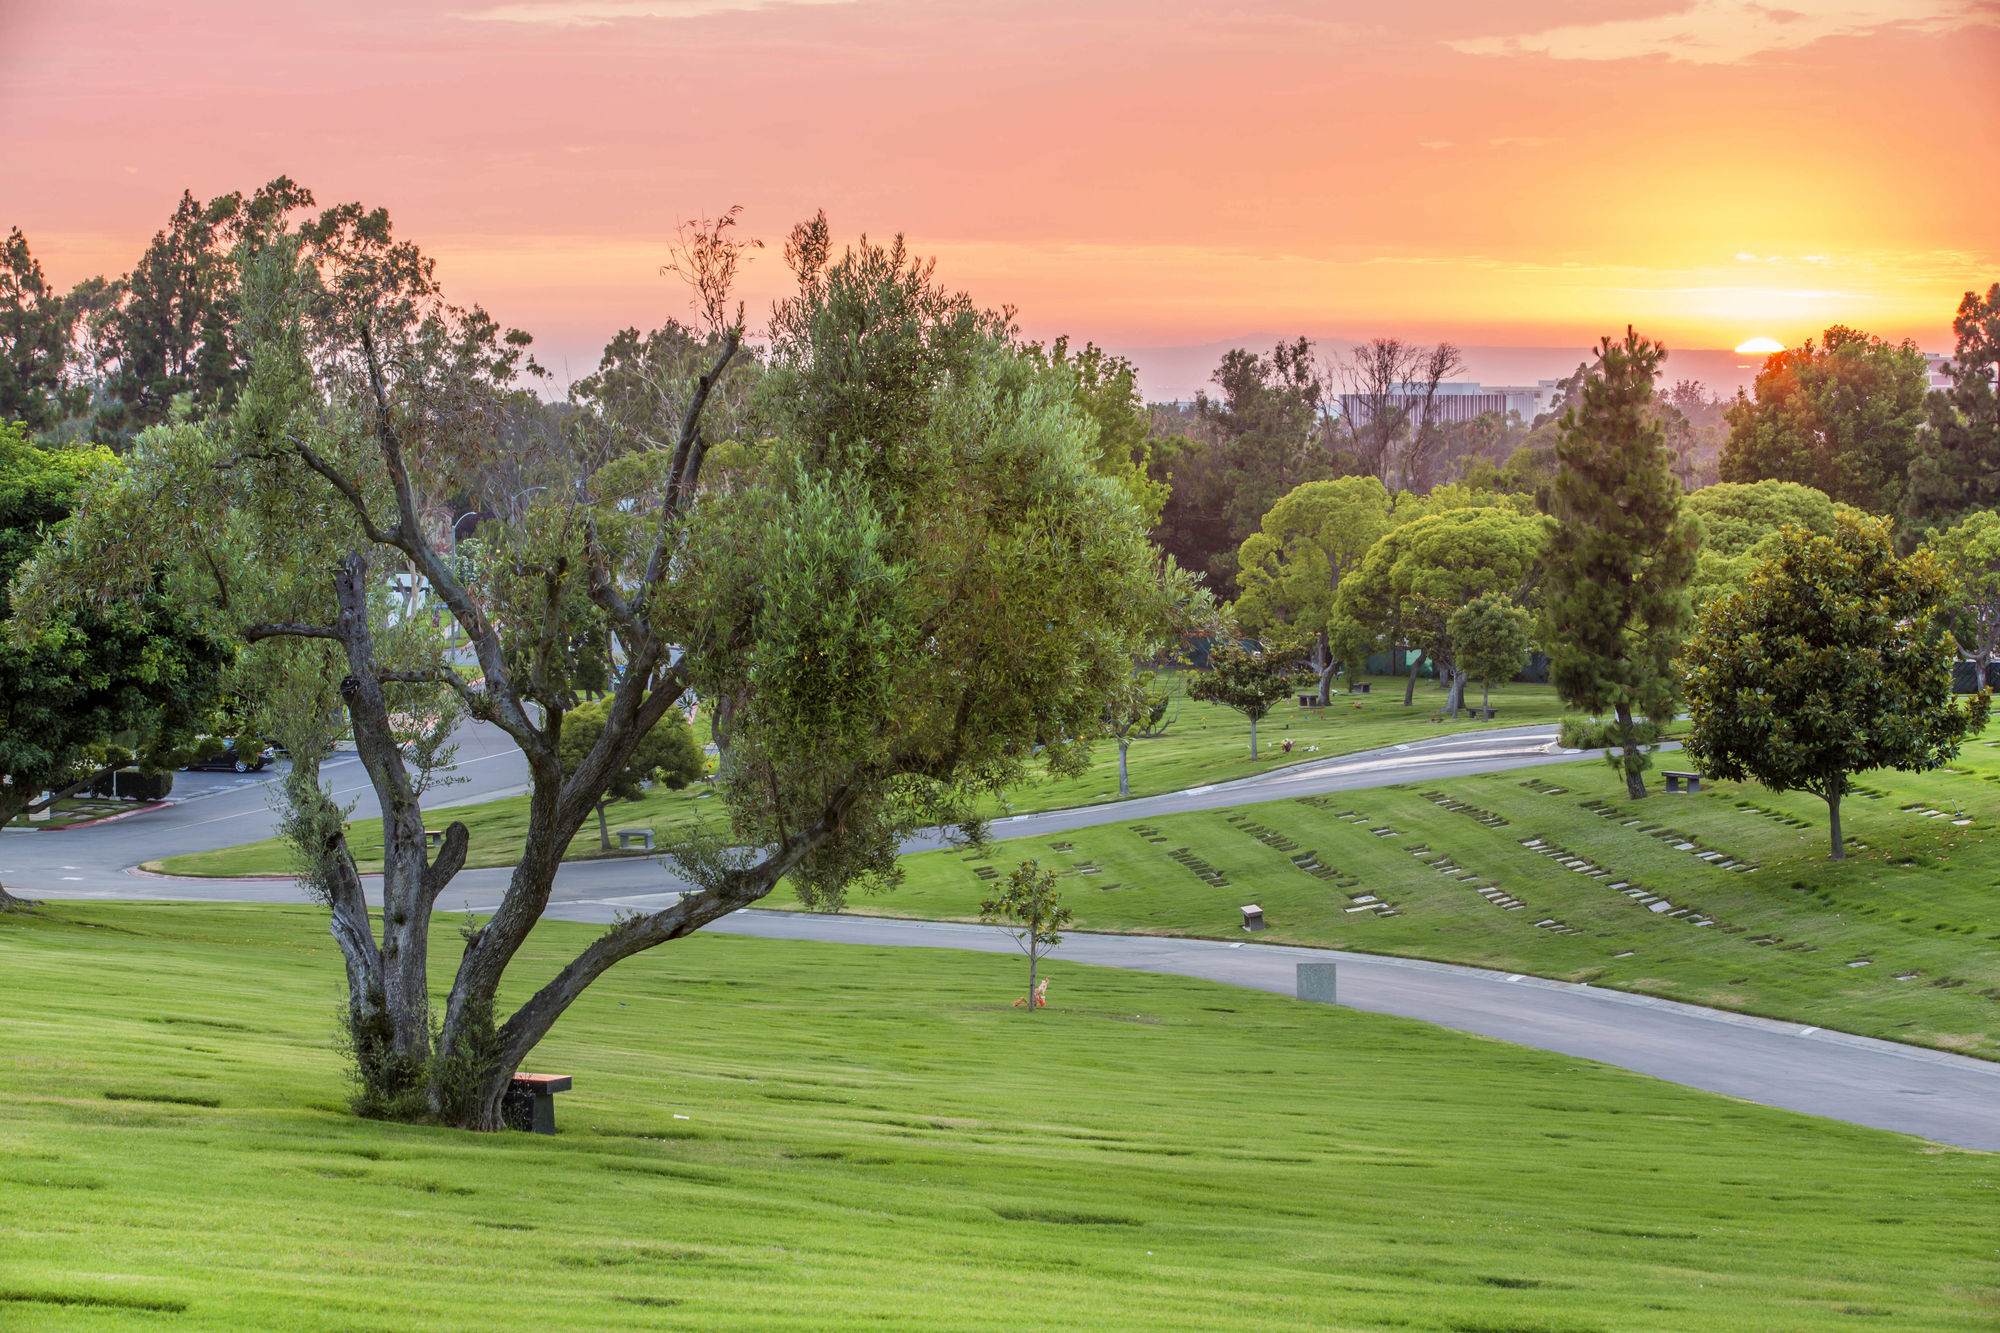 Sunset at Pacific View Memorial Park